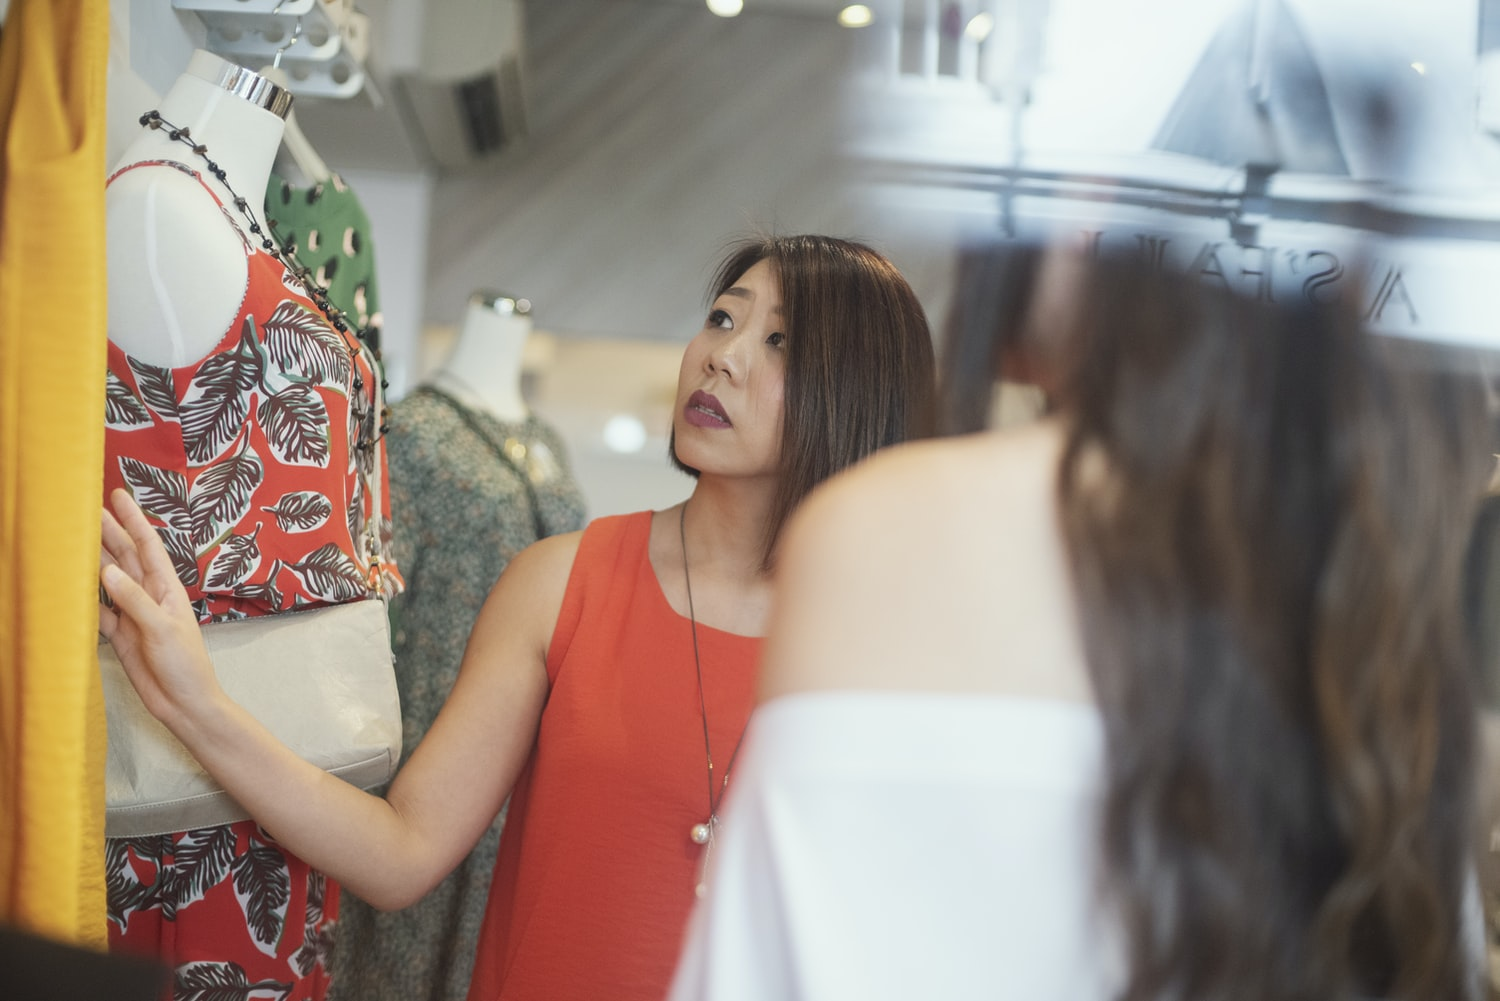 Retailer's Challenges for Return Process and Solution